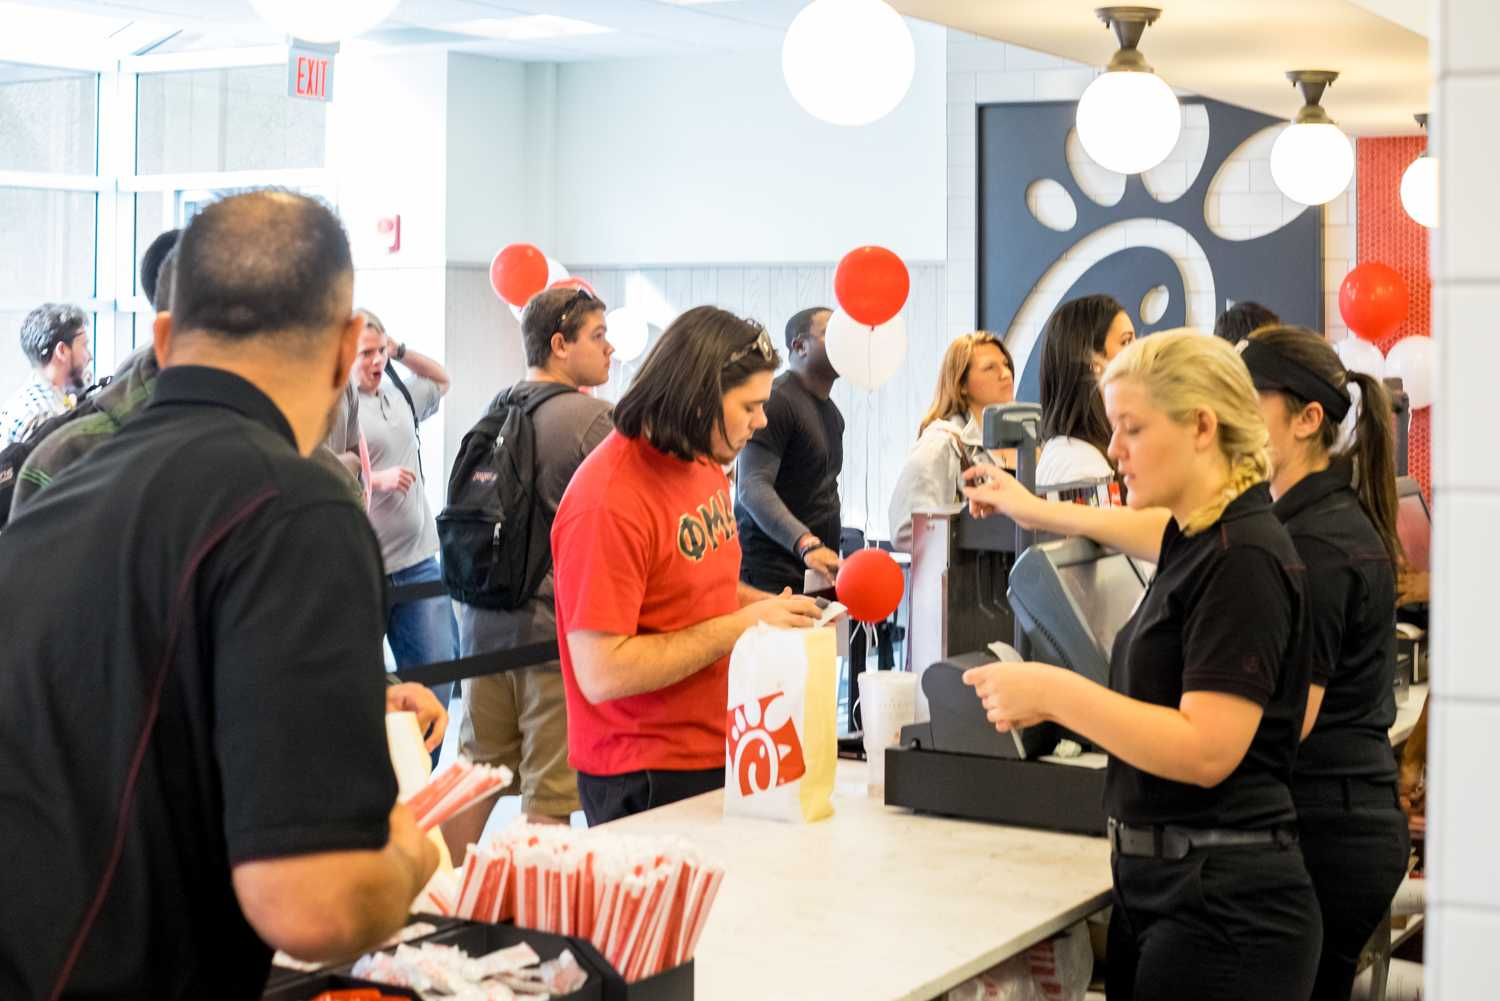 Students buying lunch at FAU's Chick-fil-A Express. Mohammed F Emran | Web Editor